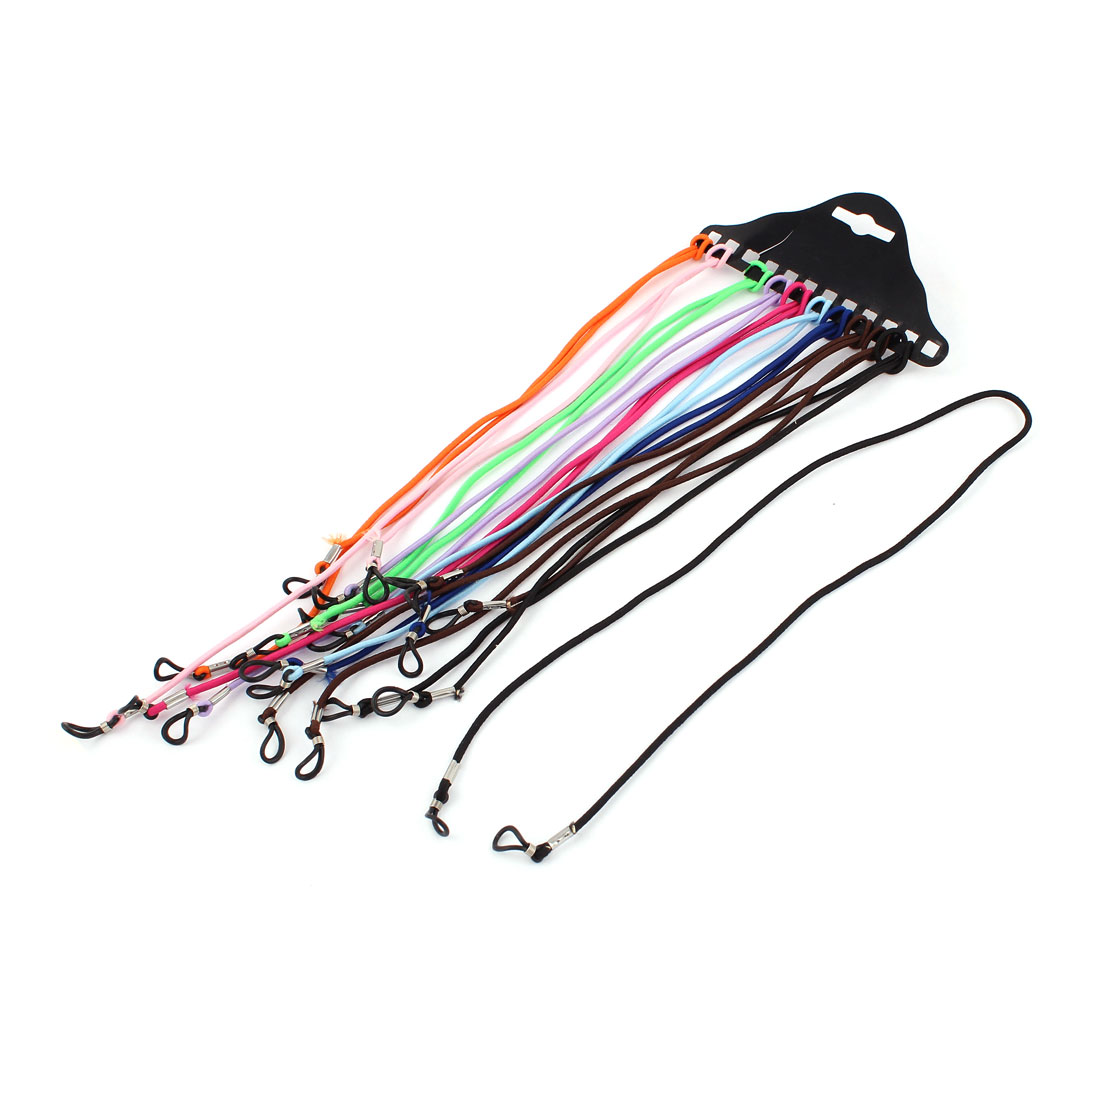 Sunglass Eyewear Nylon Neck Cord Glasses Spectacle Retainer Strap String Lanyard Holder 11pcs Assorted Color